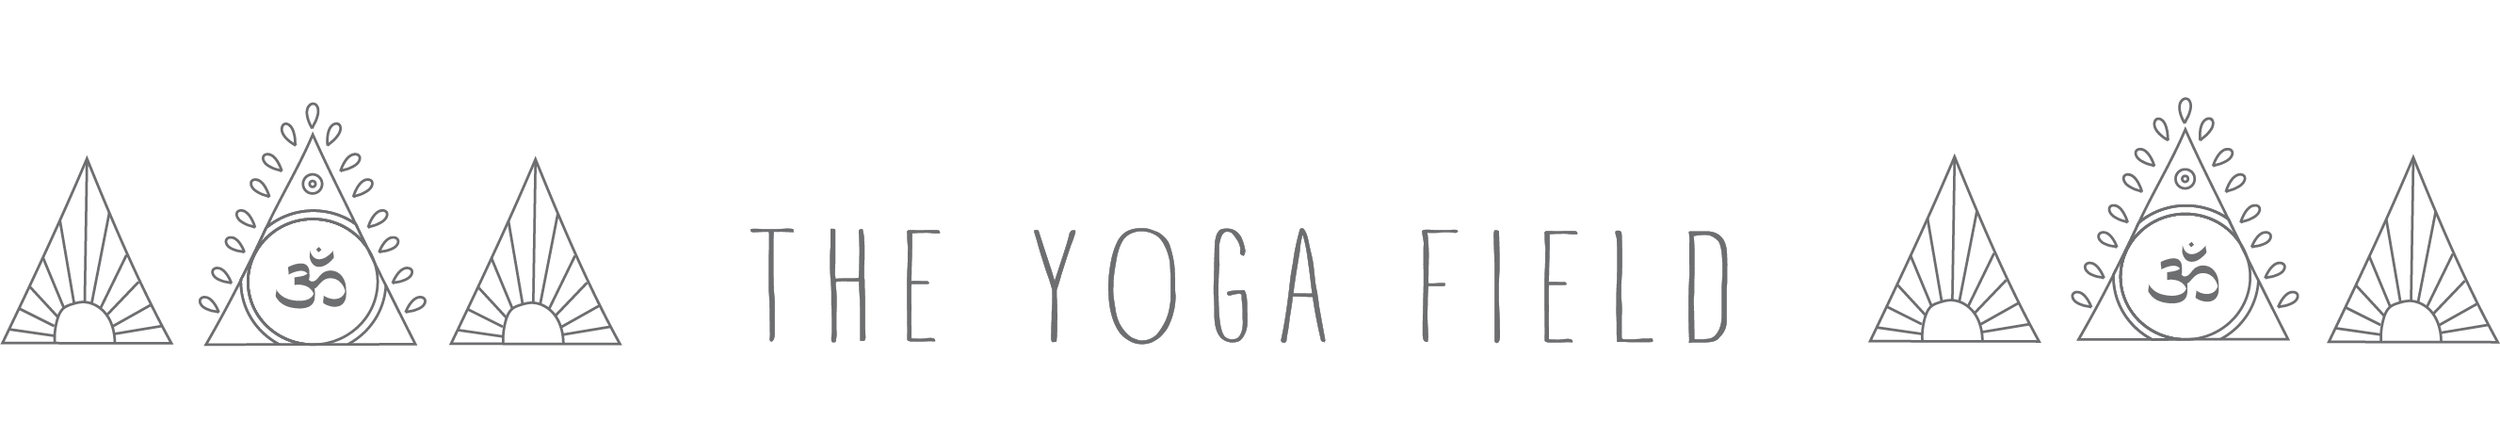 Yoga field website banner v2.jpg